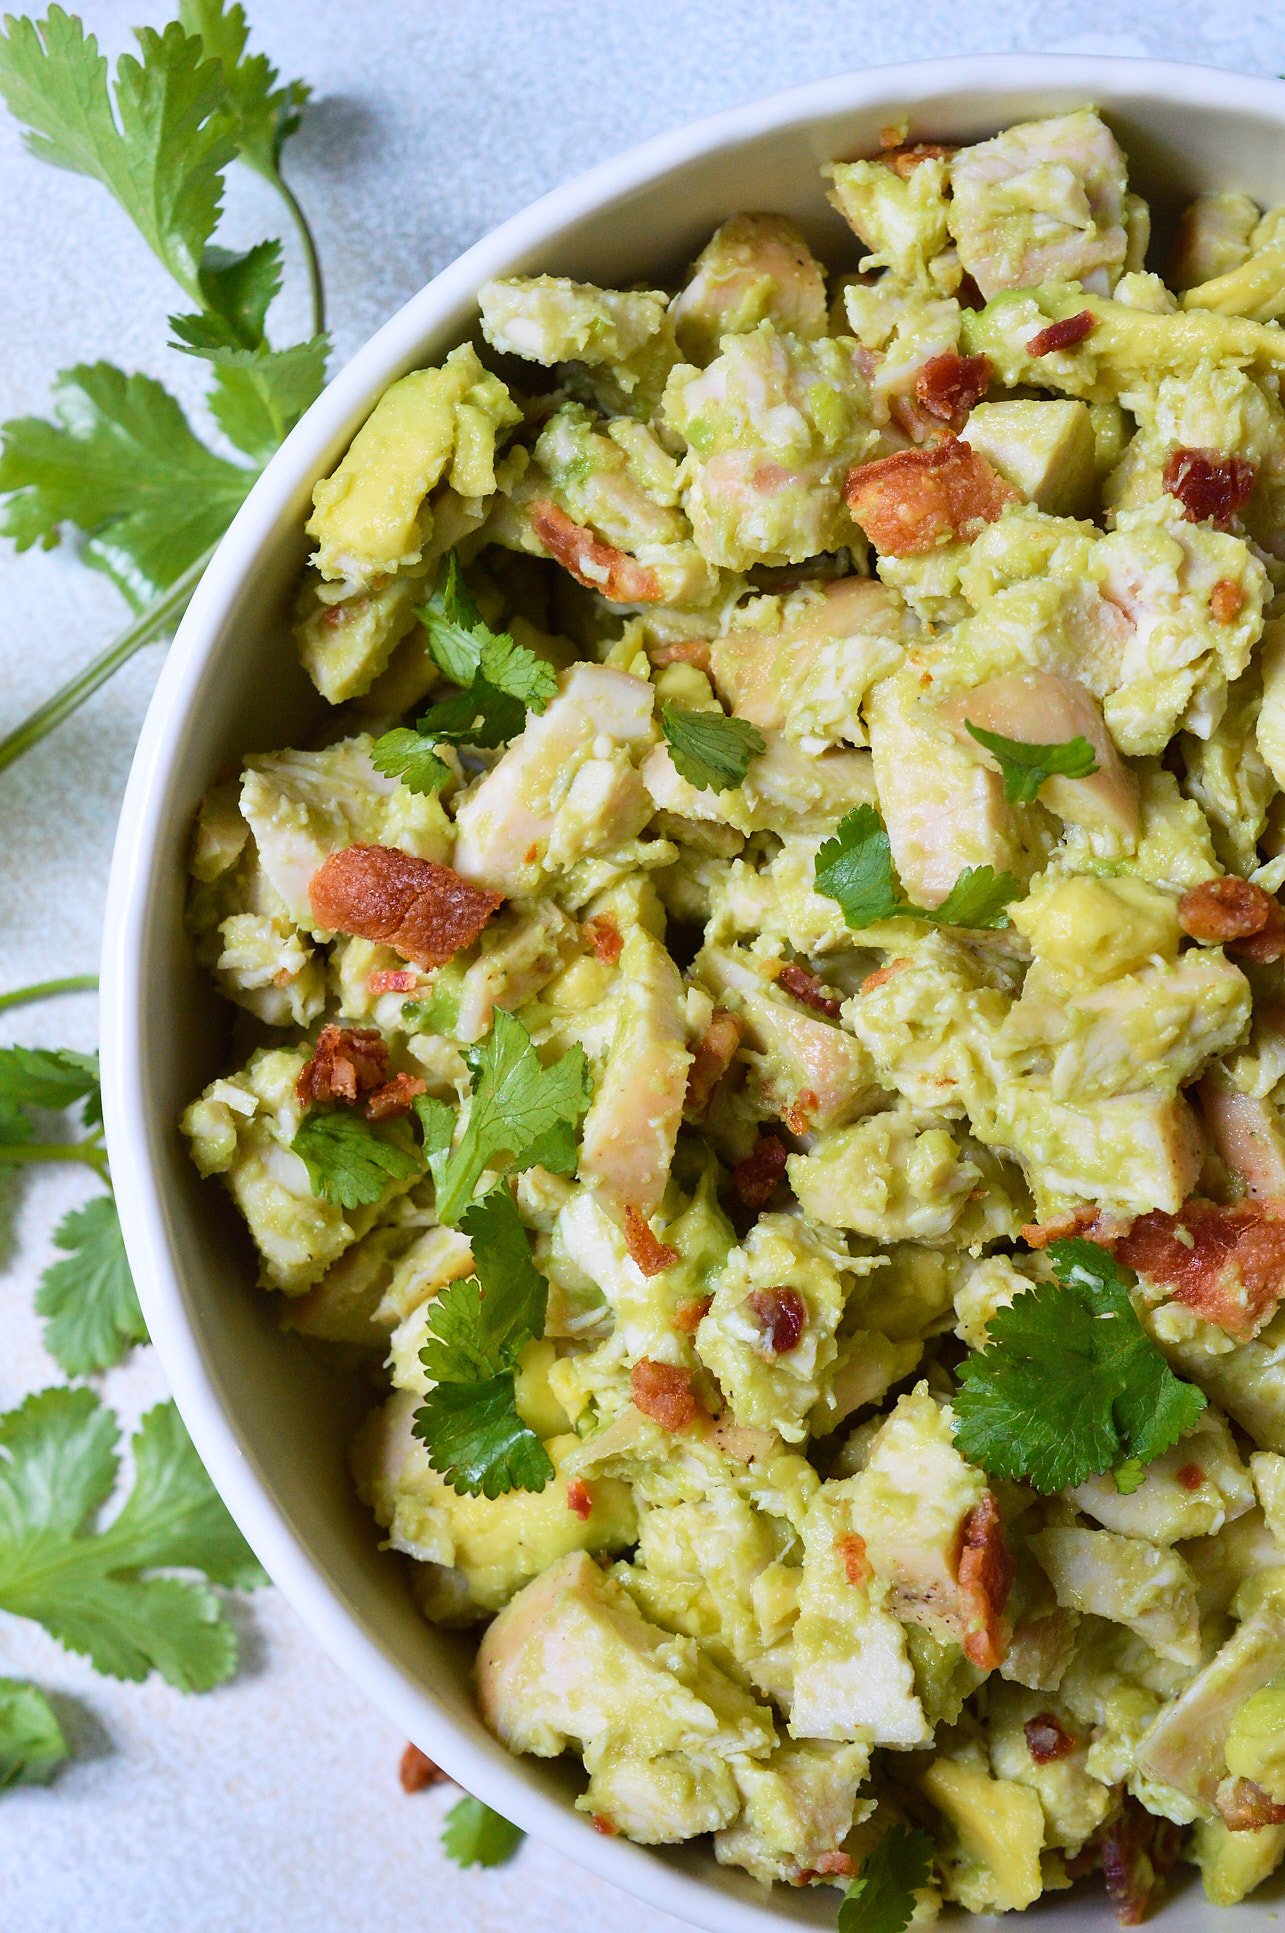 Bacon Avocado Chicken Salad Whole30 Recipe - WonkyWonderful